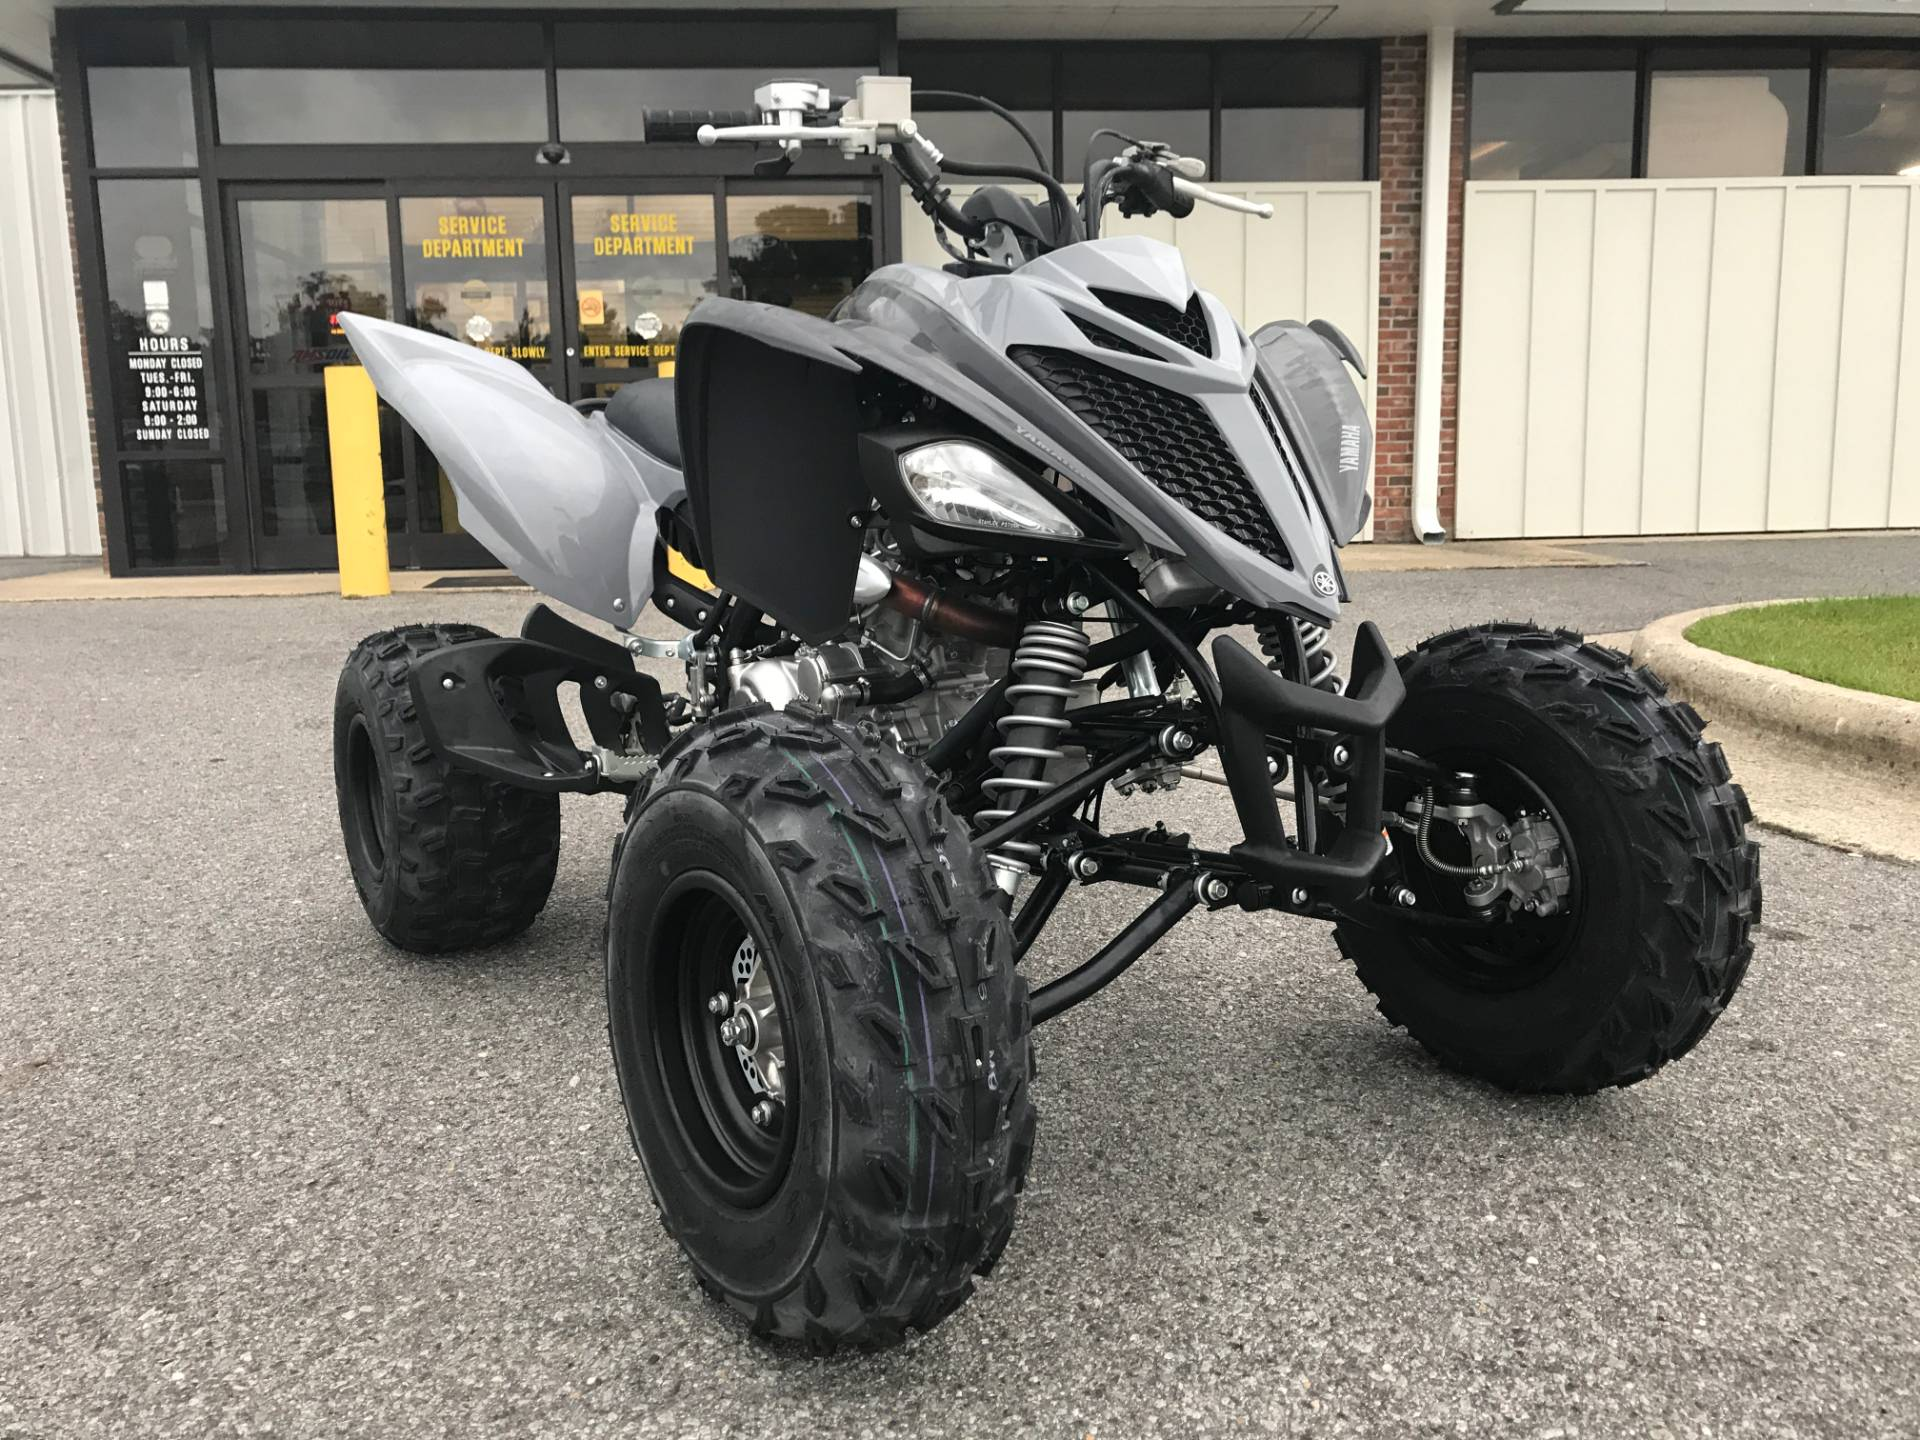 Scooters For Sale Greenville Nc >> 2018 Yamaha Raptor 700 For Sale Greenville, NC : 59771